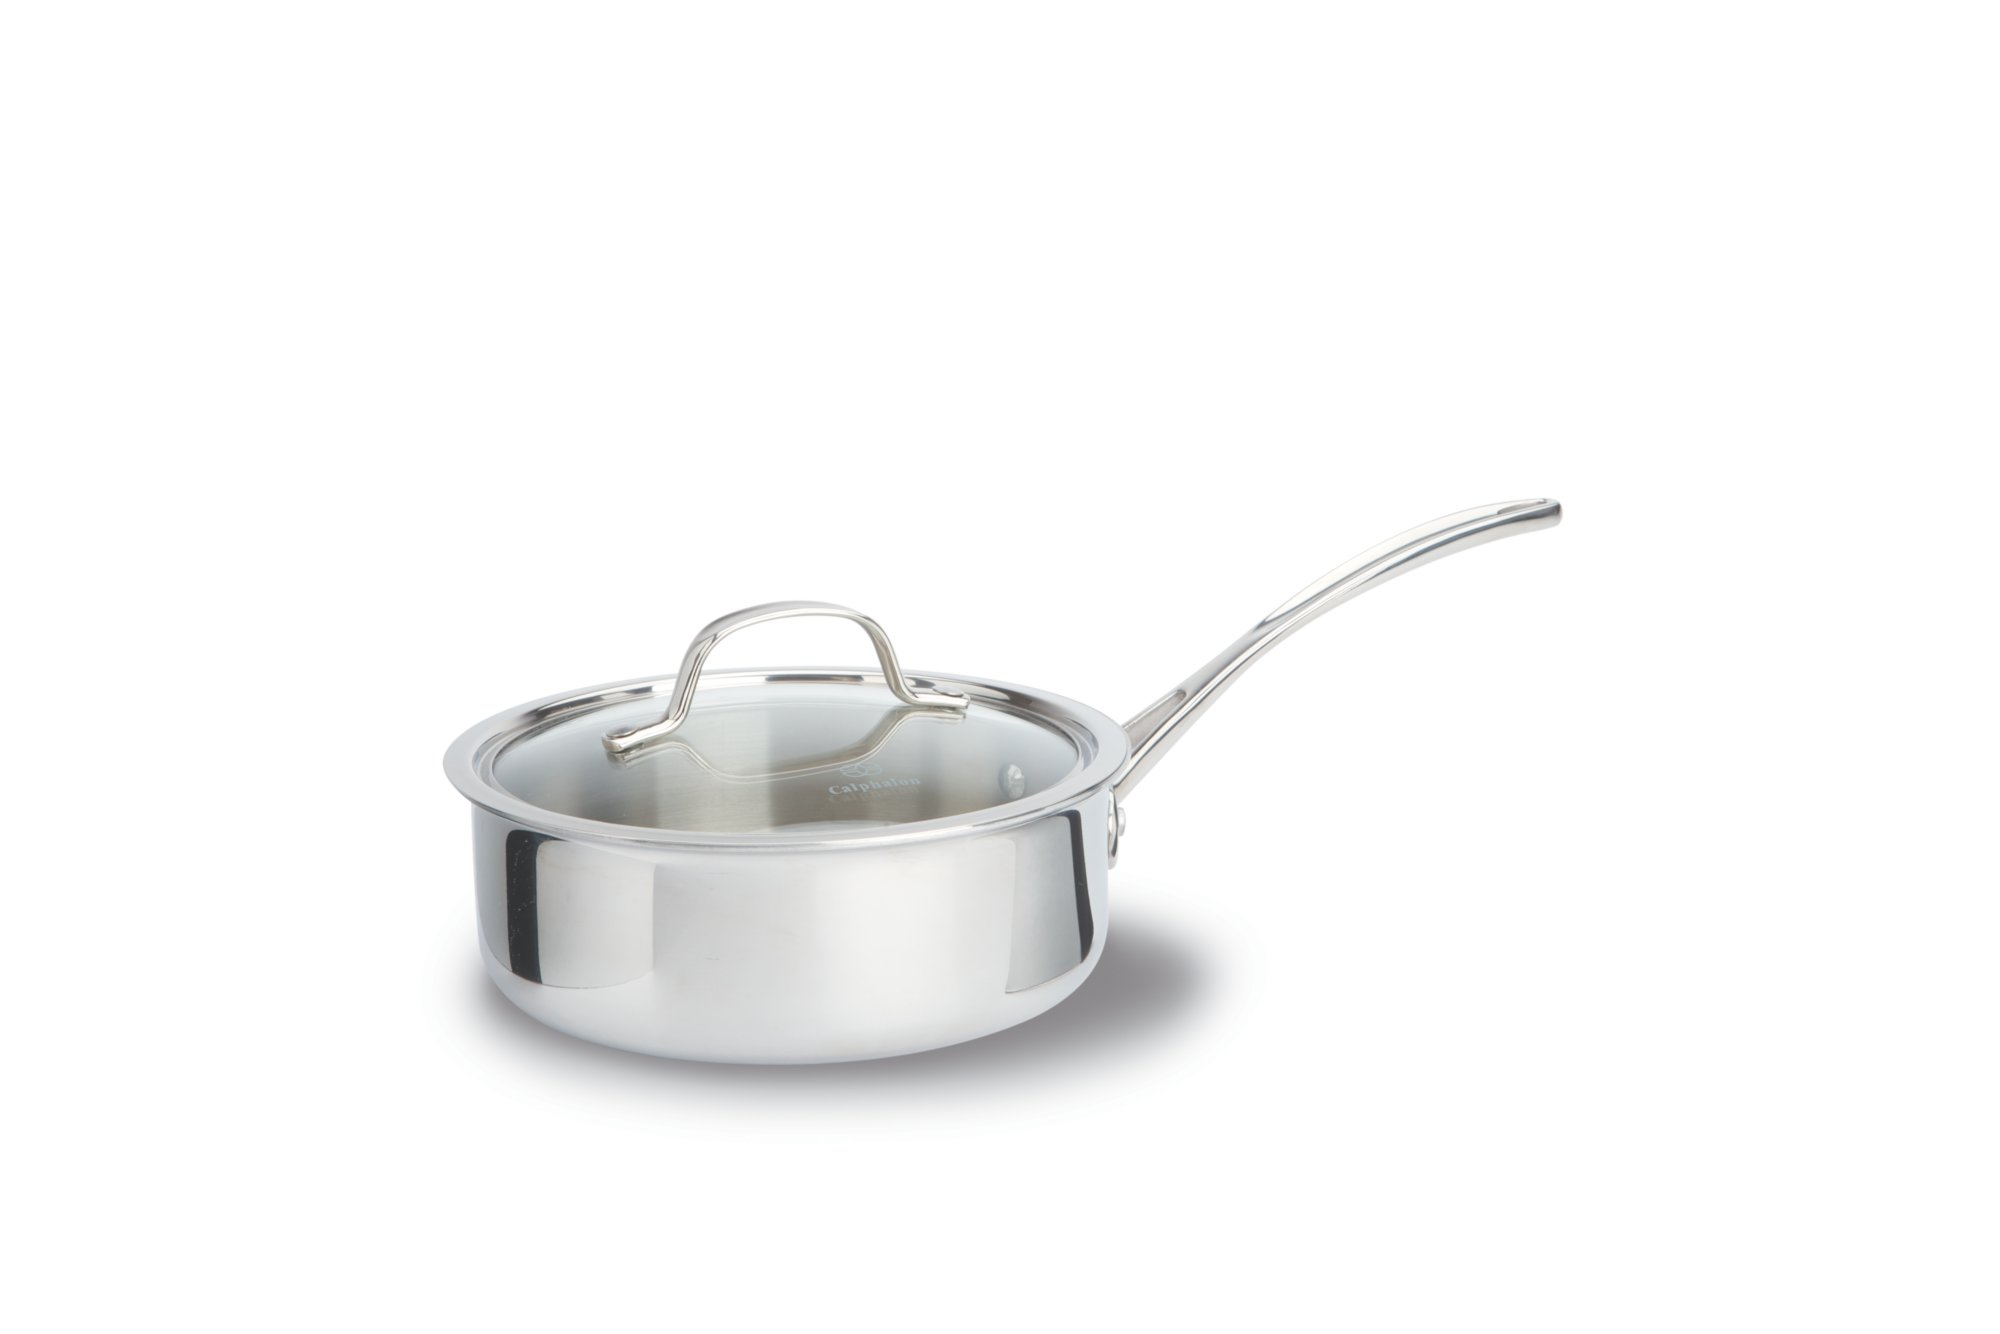 Calphalon Tri-Ply Stainless Steel 2.5-qt. Shallow Sauce Pan with Cover